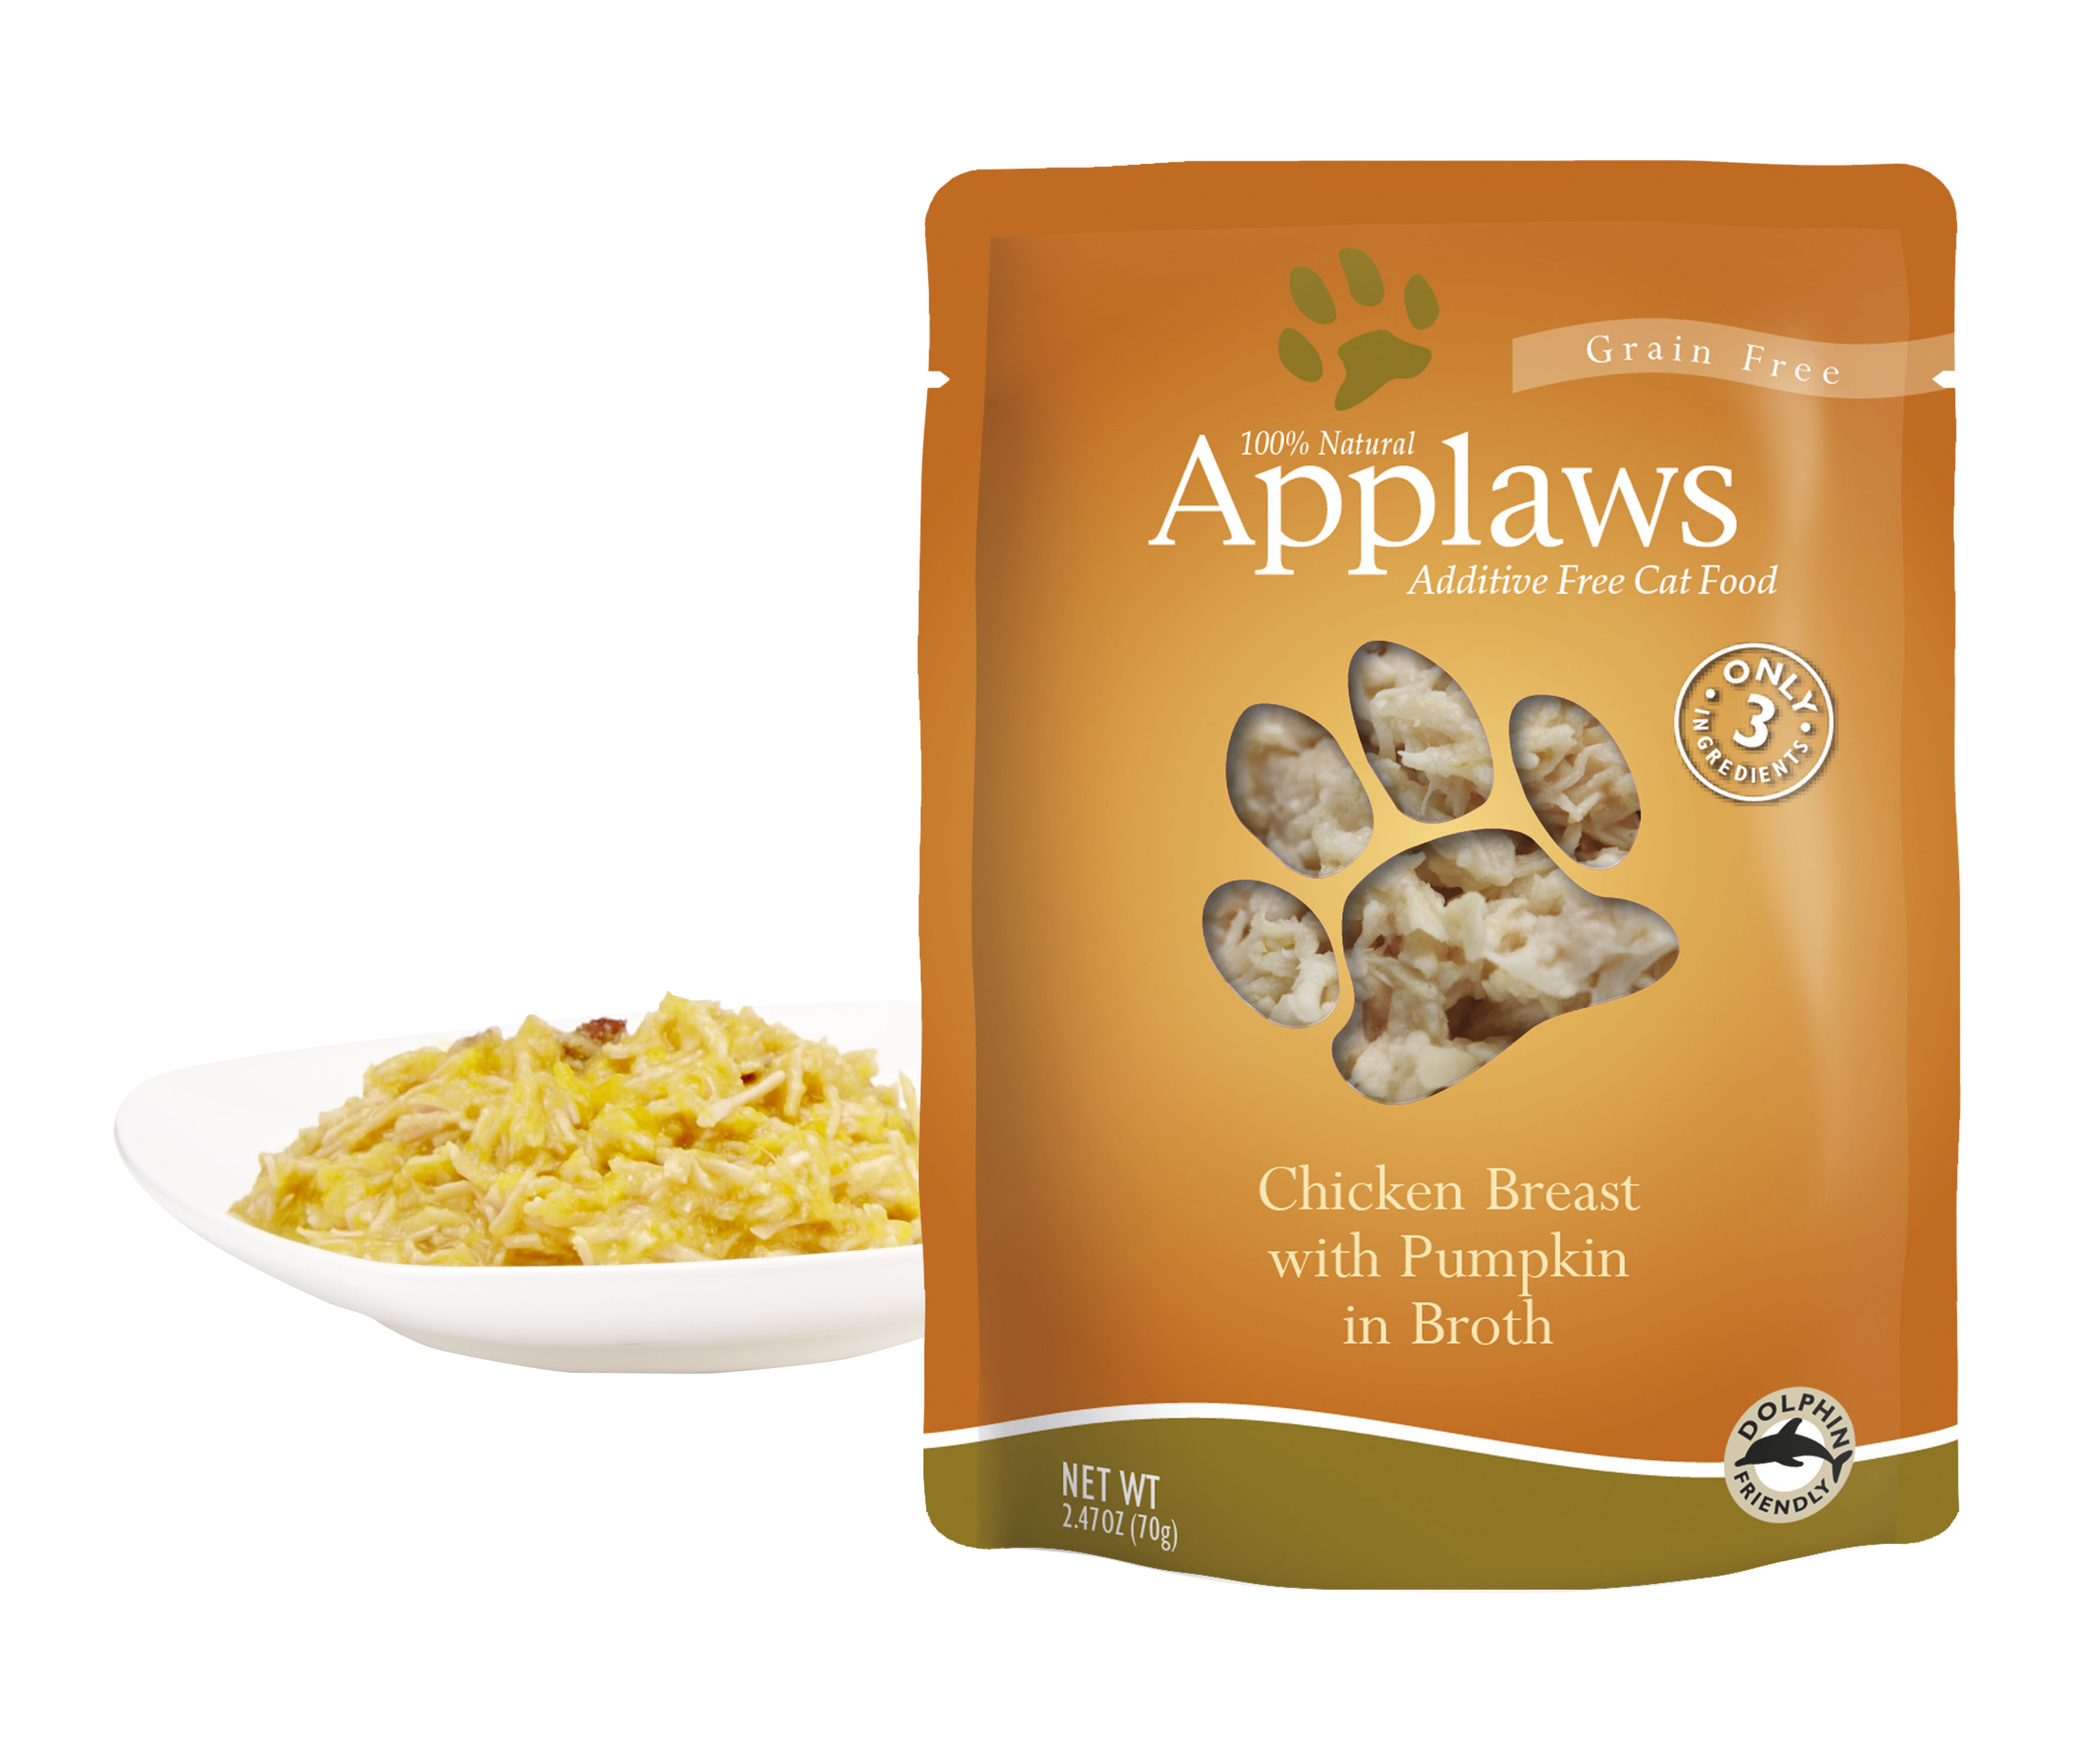 AppCat70gBrothPouch_PouchWithFood_US_ChickenPumpkin.jpg